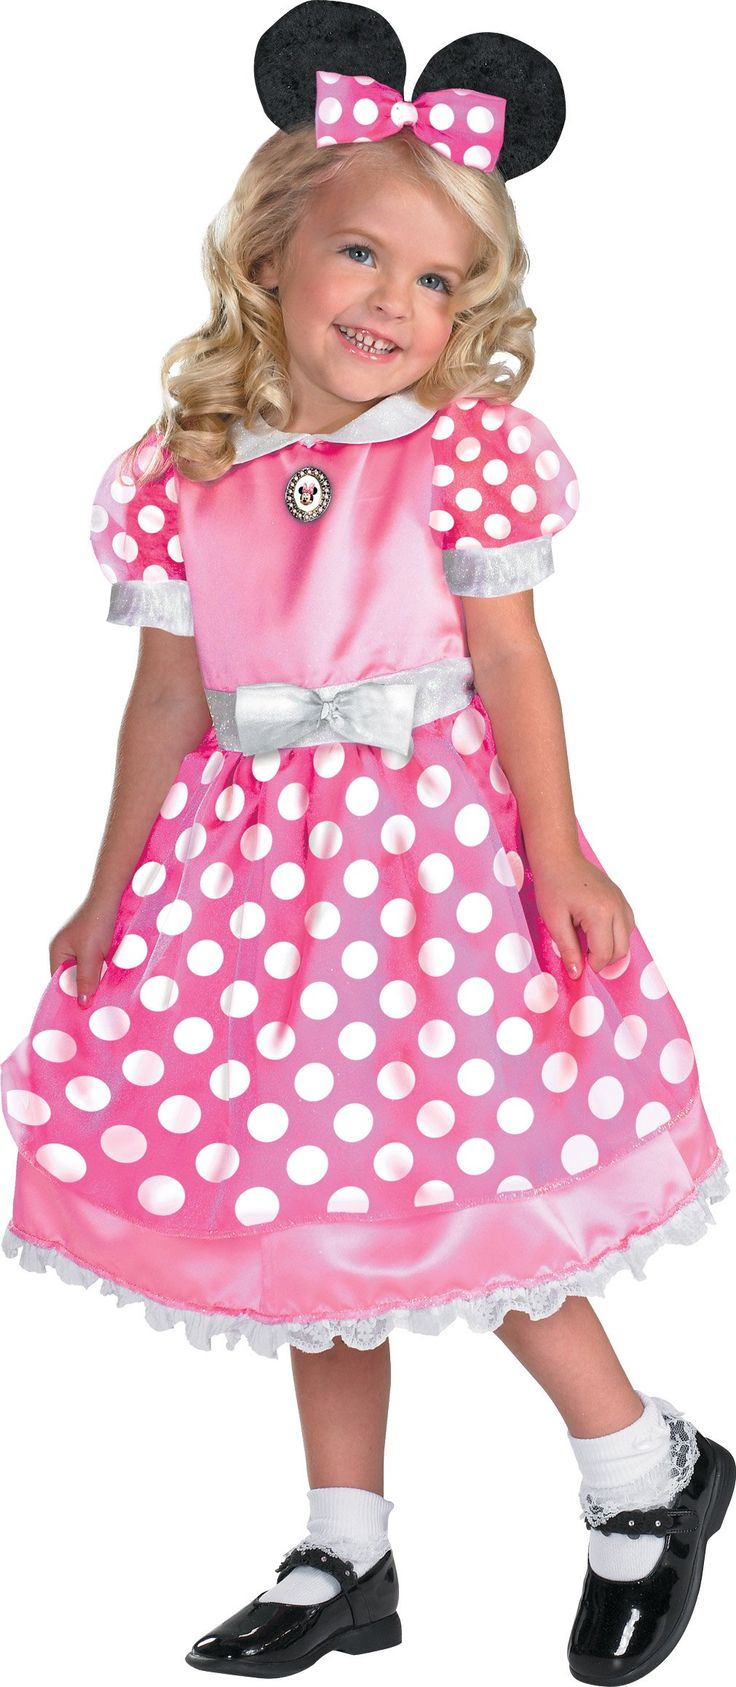 Disney Clubhouse Minnie Mouse (Pink) Toddler / Child Costume from BuyCostumes.com